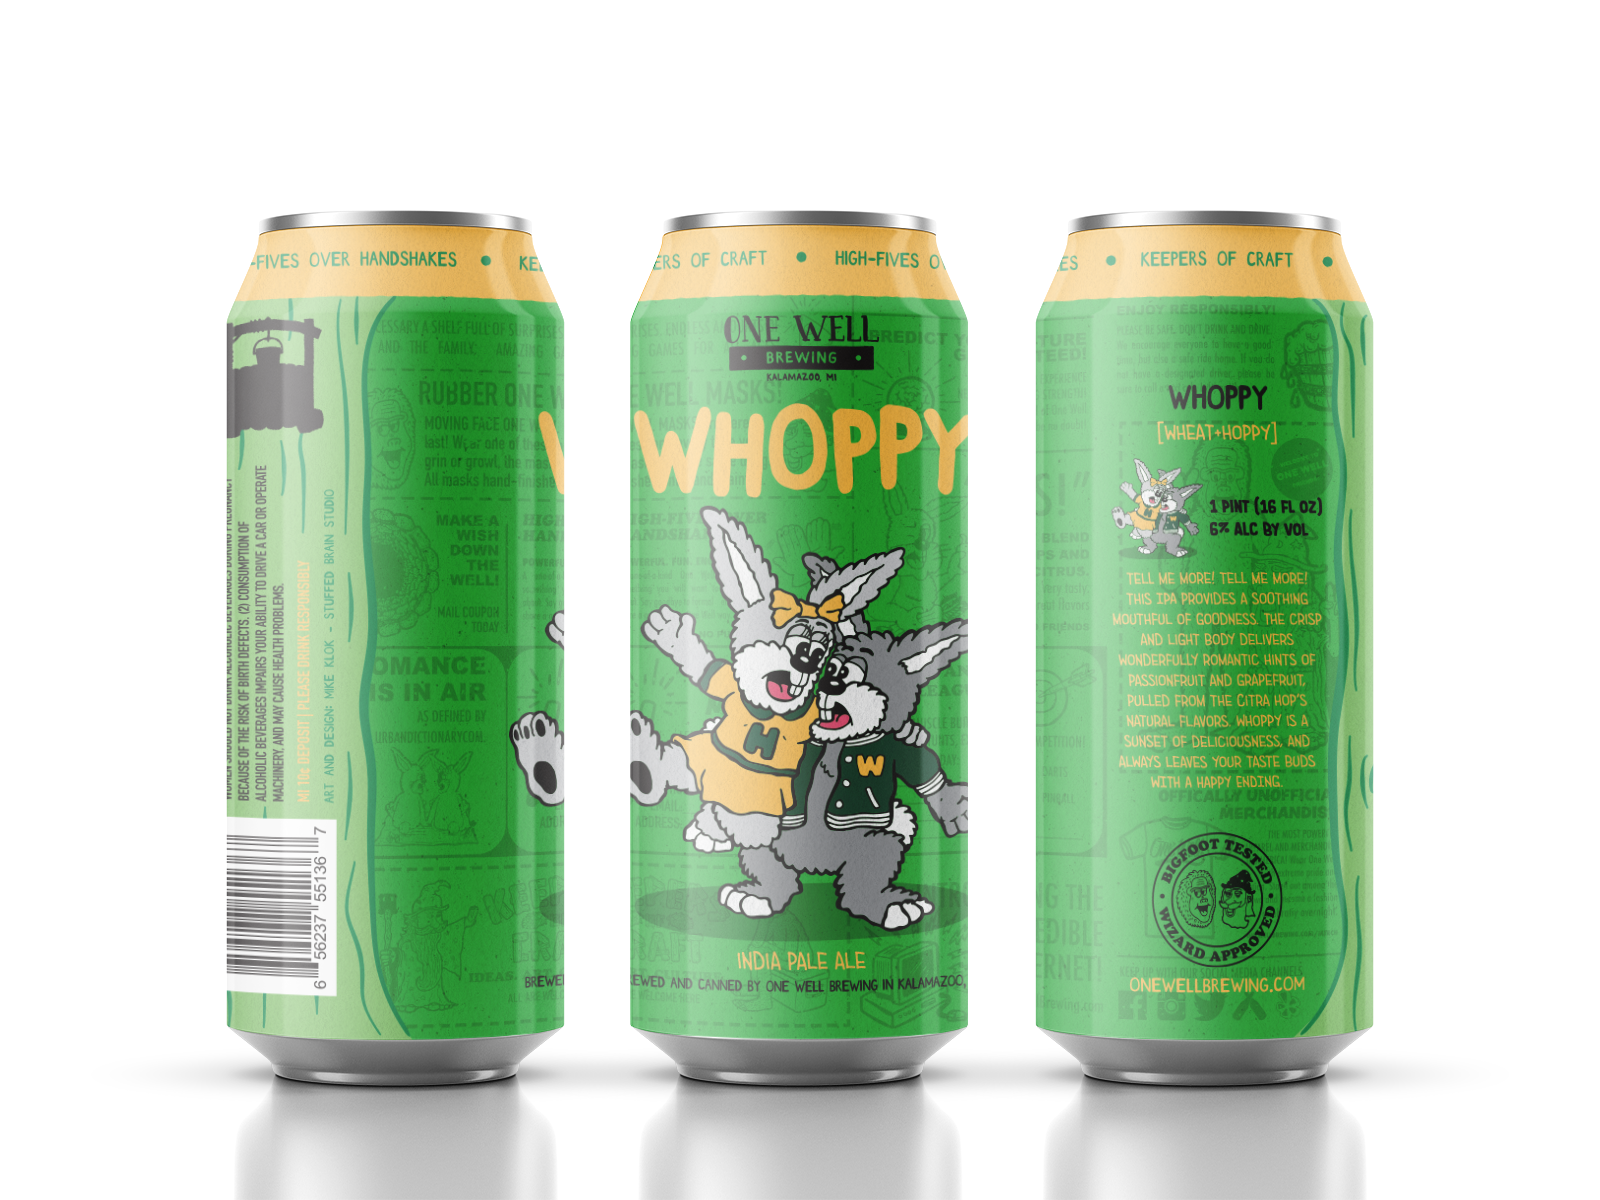 SBS_OW_LABEL_MOCKUPS_19_WHOPPY.png